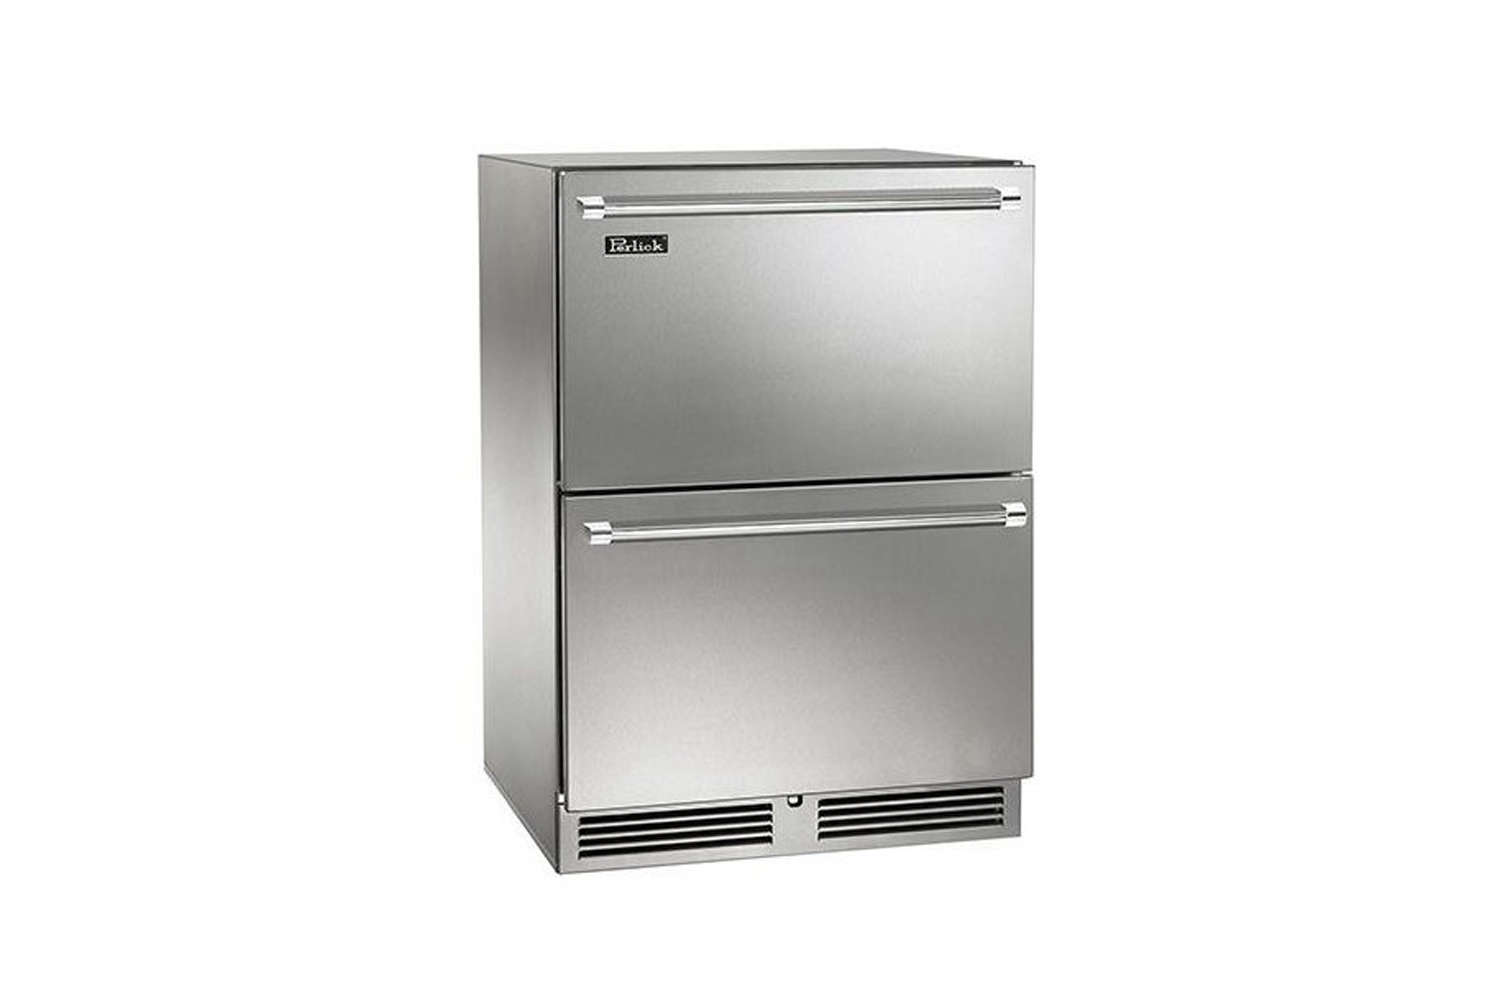 10 Easy Pieces Choosing An Undercounter Refrigerator The Perlick \24 Inch Outdoor Undercounter Freezer Refrigerator Drawers (HP\24ZO35) can be used indoors or out; \$4,999 at AJ Madison.